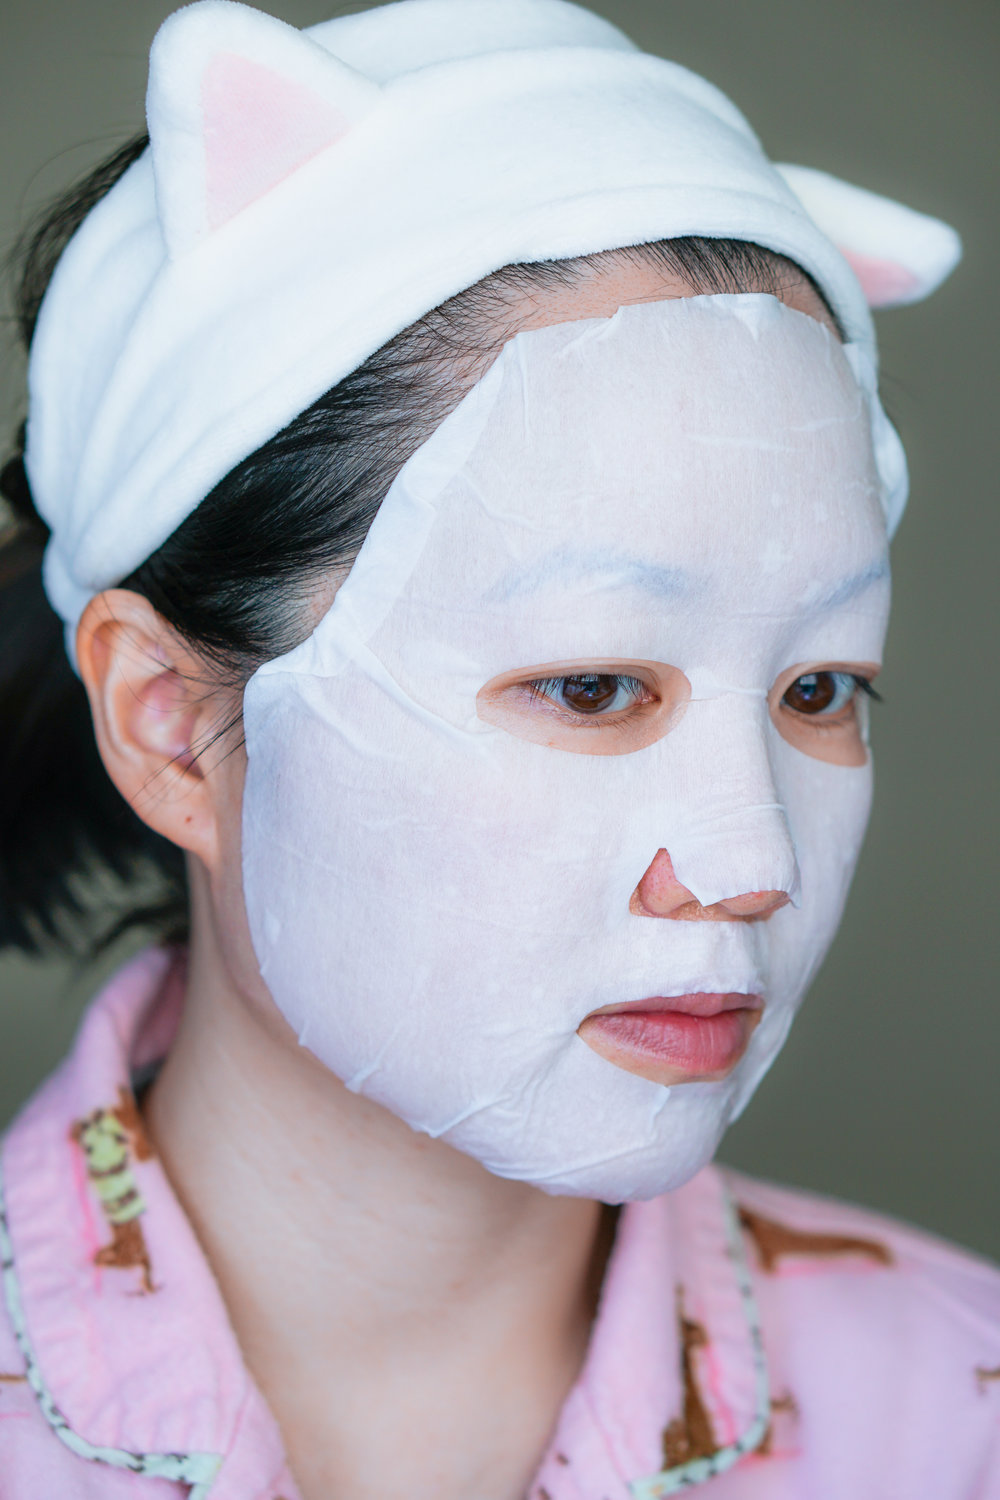 Jayjun AntiDust Whitening Mask Review_DSC07211-2.jpg